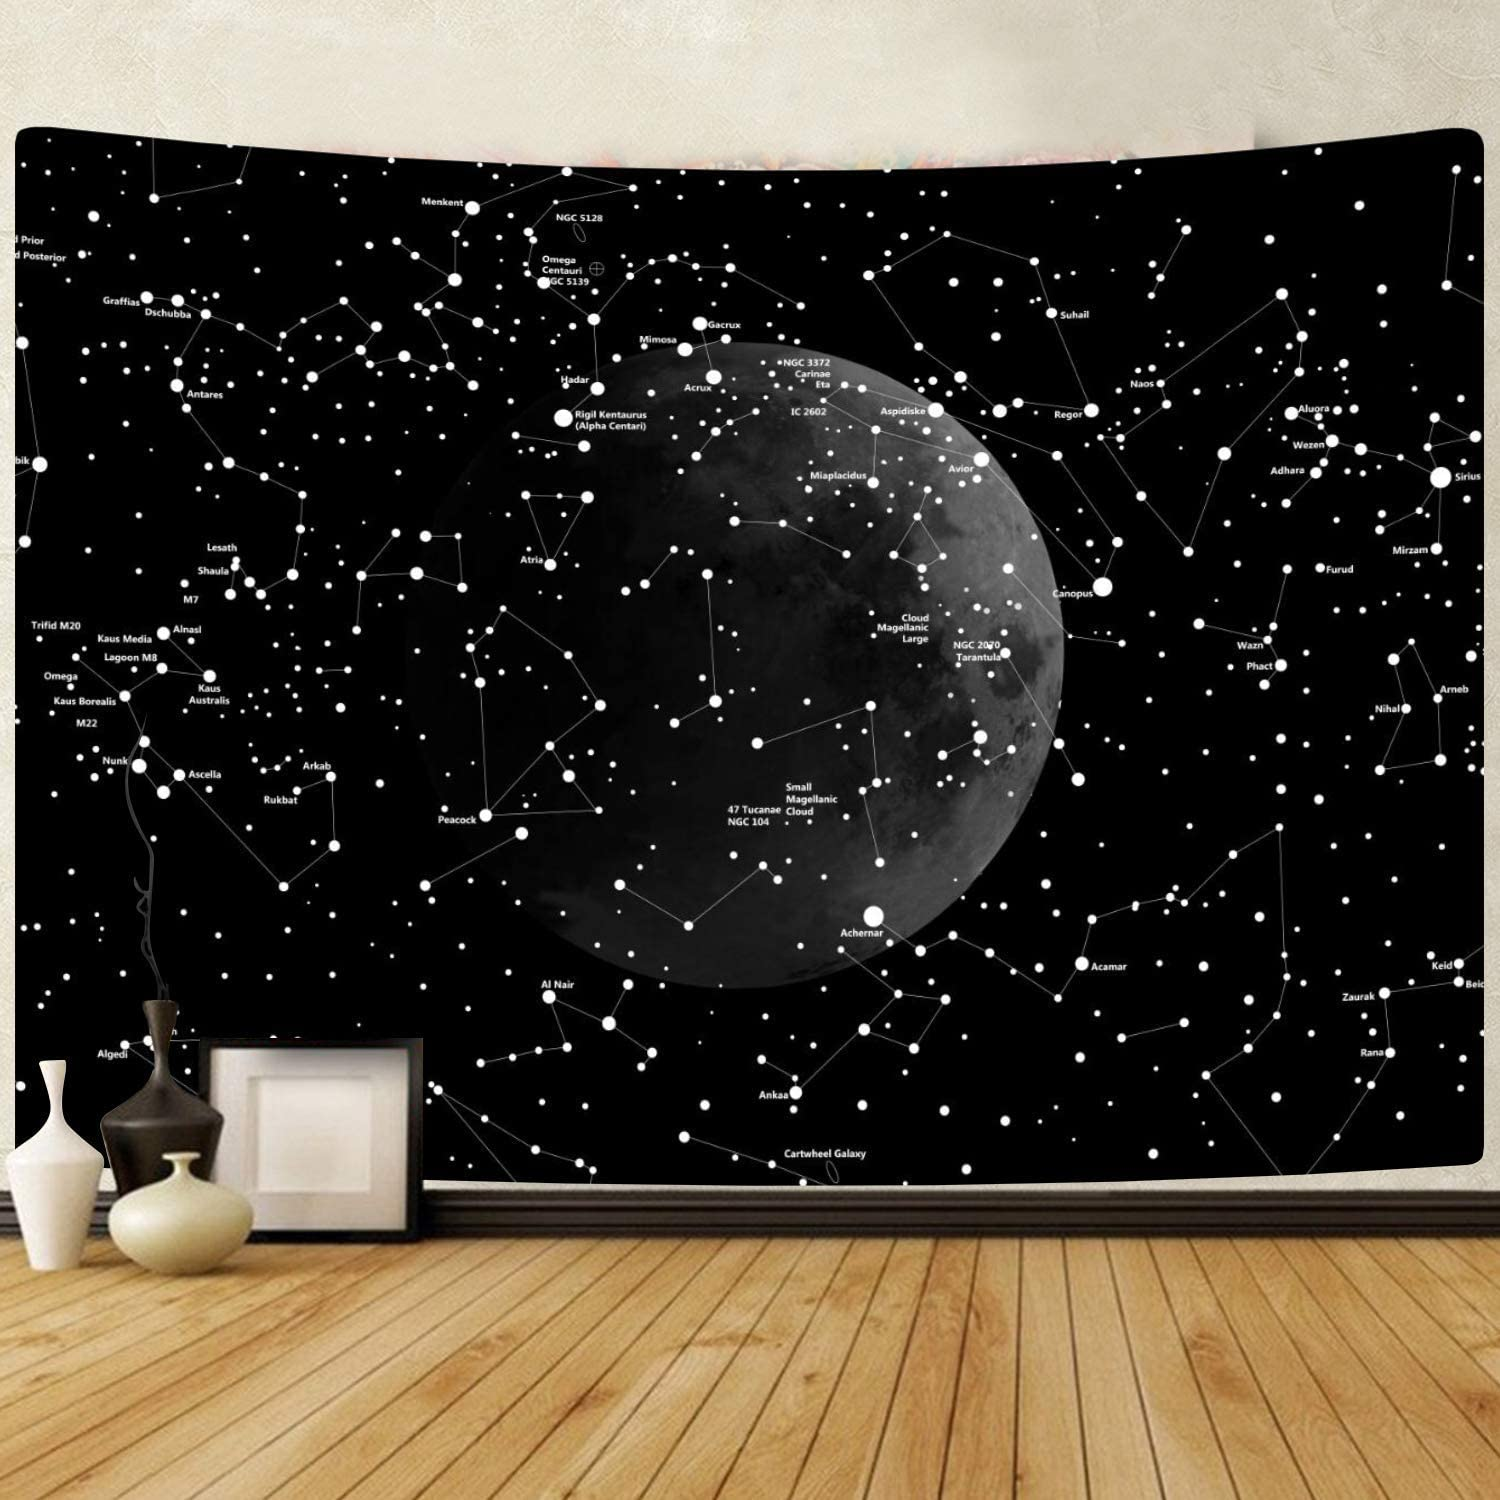 PANDAYAQ Moon Constellations Tapestry Wall Hanging Space Astrology Tapestry Black and White Tapestry for Bedroom Living Room Dorm Wall Decor